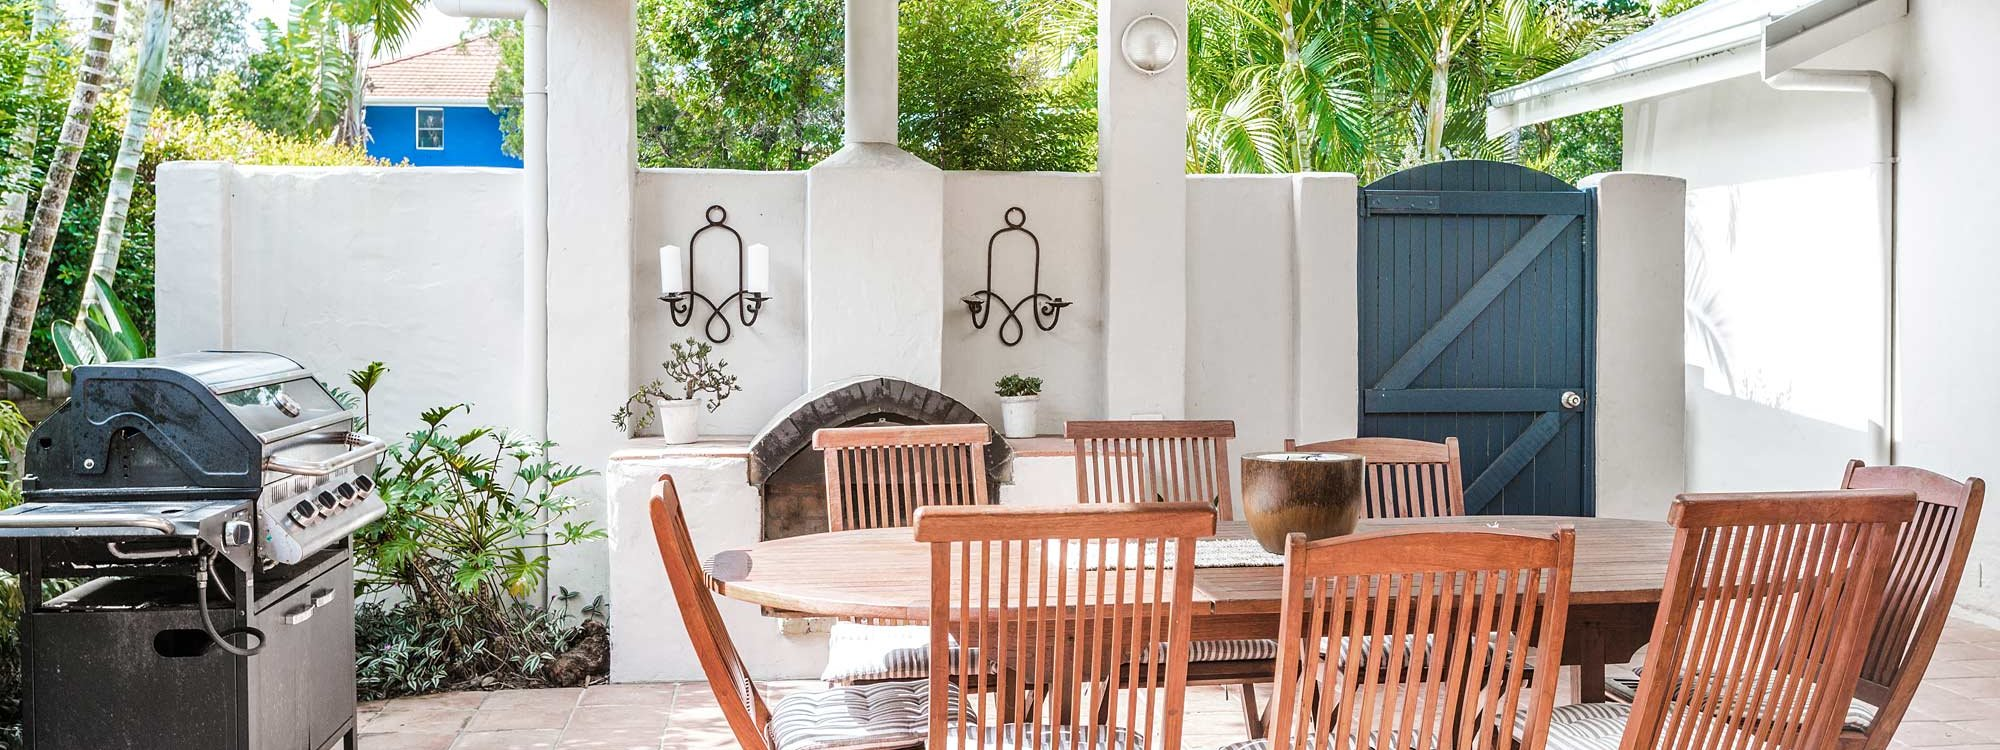 Beachwood - Byron Bay - Outdoor Dining and BBQ